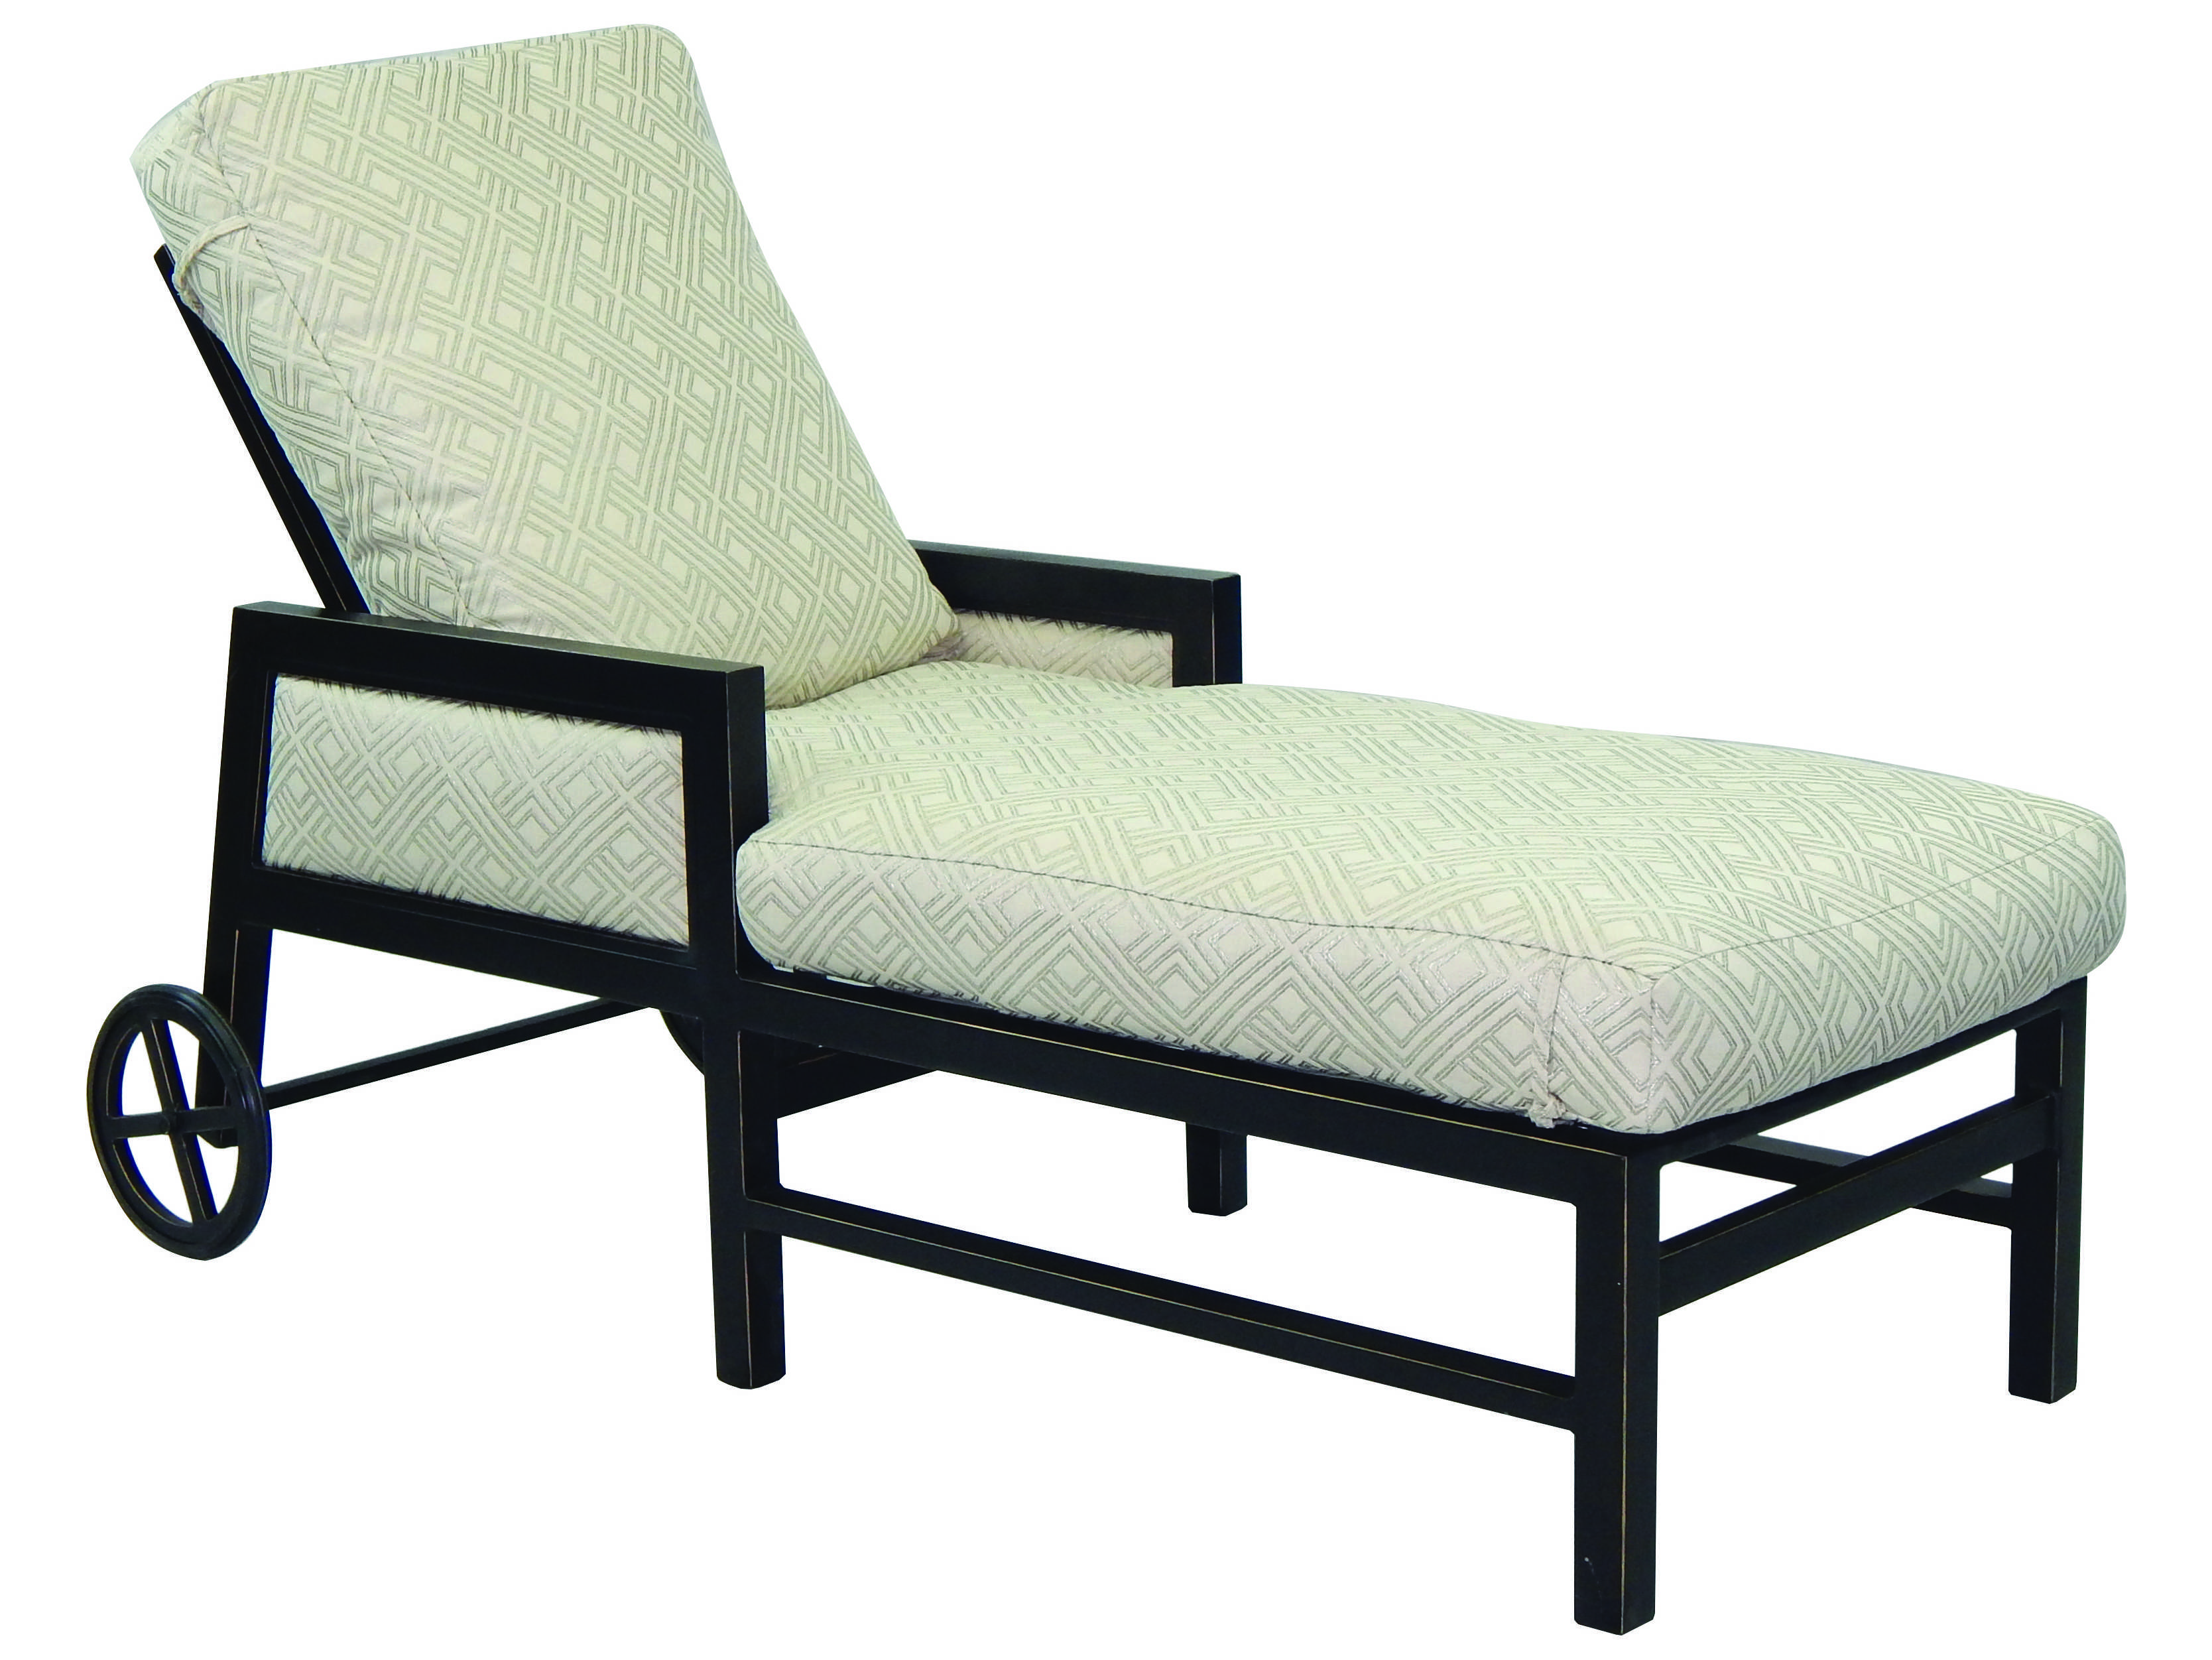 Castelle gold coast cushion aluminum adjustable chaise for Aluminum chaise lounge with wheels